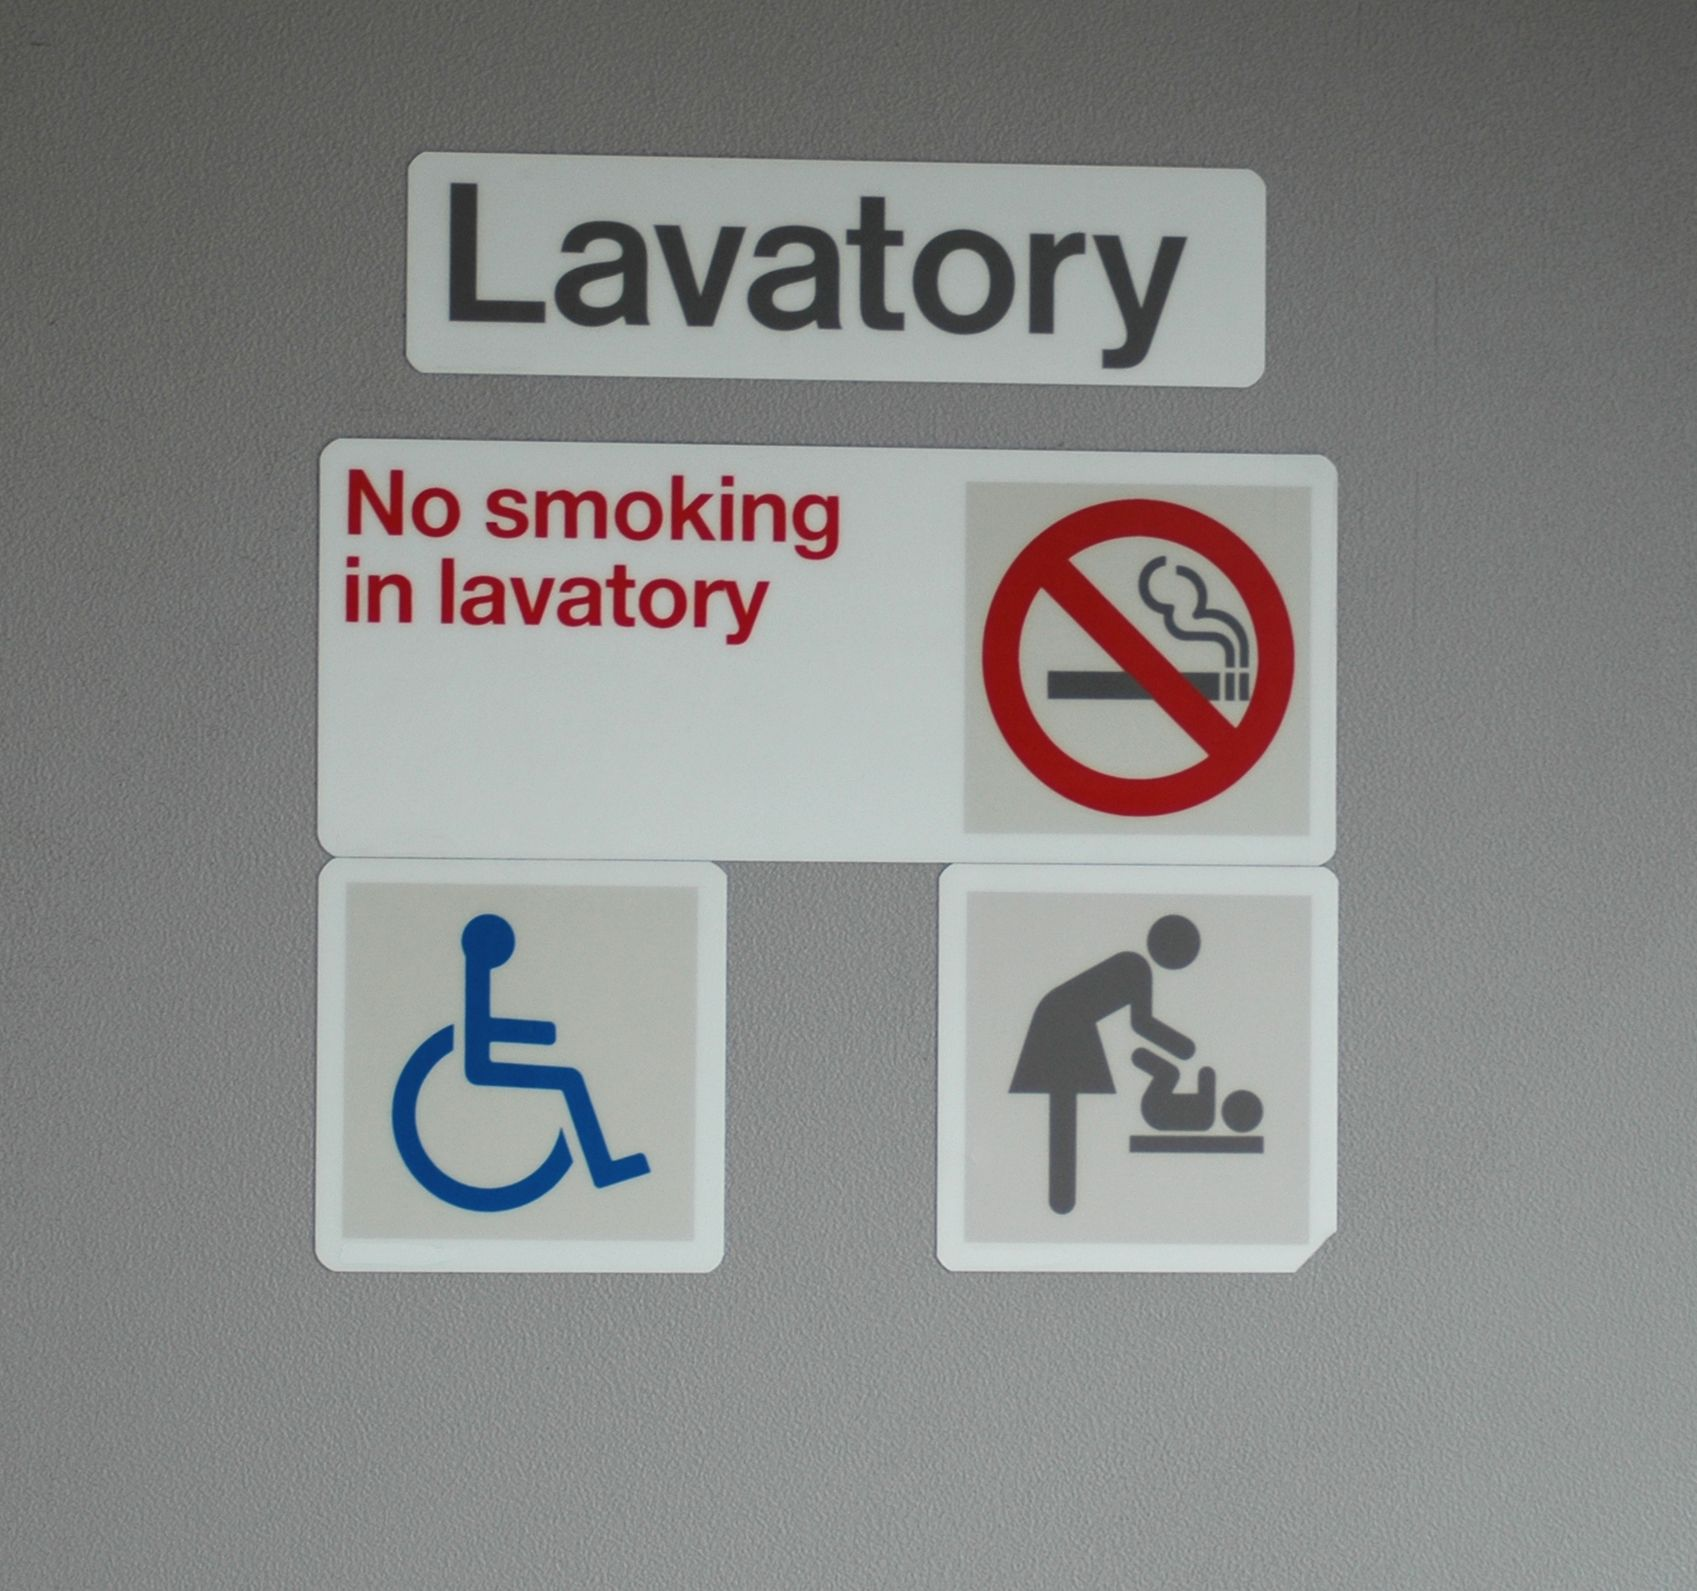 Why airplane toilets still contain ashtrays, even though you can't smoke